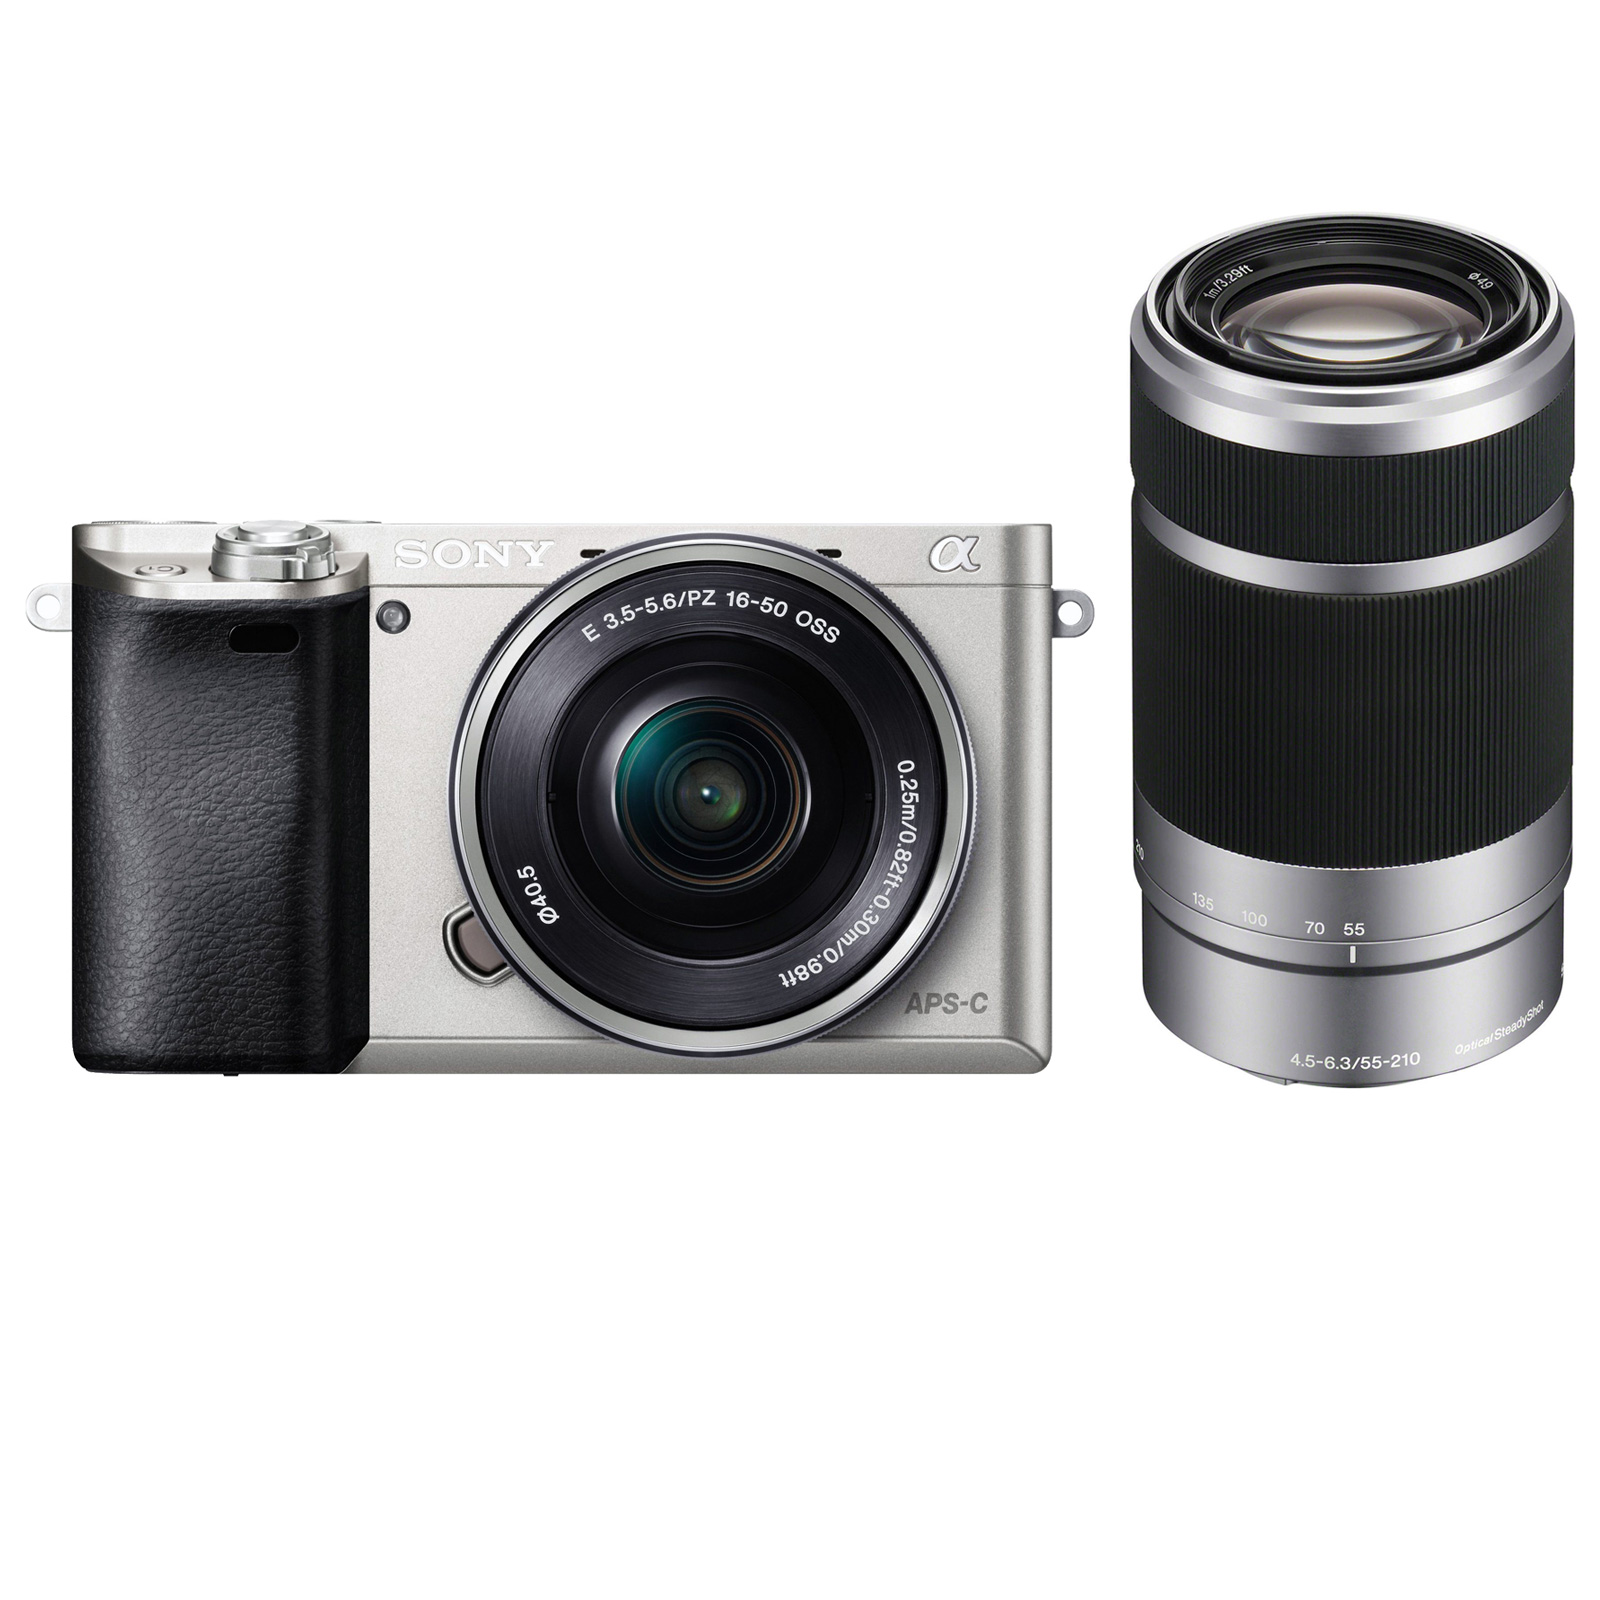 Sony Alpha A6000 Wi-Fi Digital Camera + 16-50mm Lens (Silver) with E-Mount 55-210mm f/4.5-6.3 OSS Zoom Lens